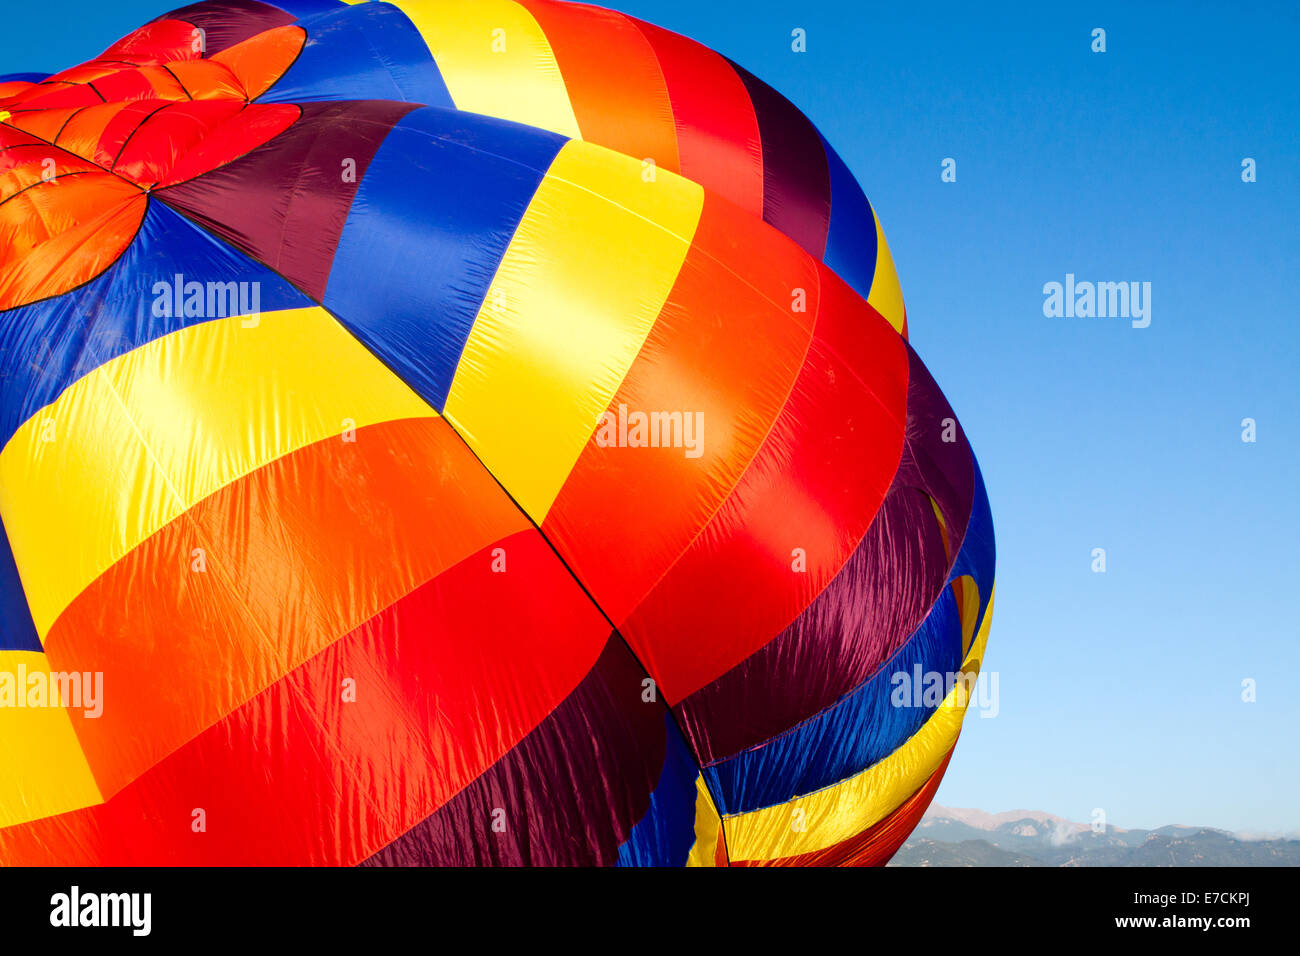 A colorful hot-air balloon being inflated with the Rocky Mountains in the distance Stock Photo